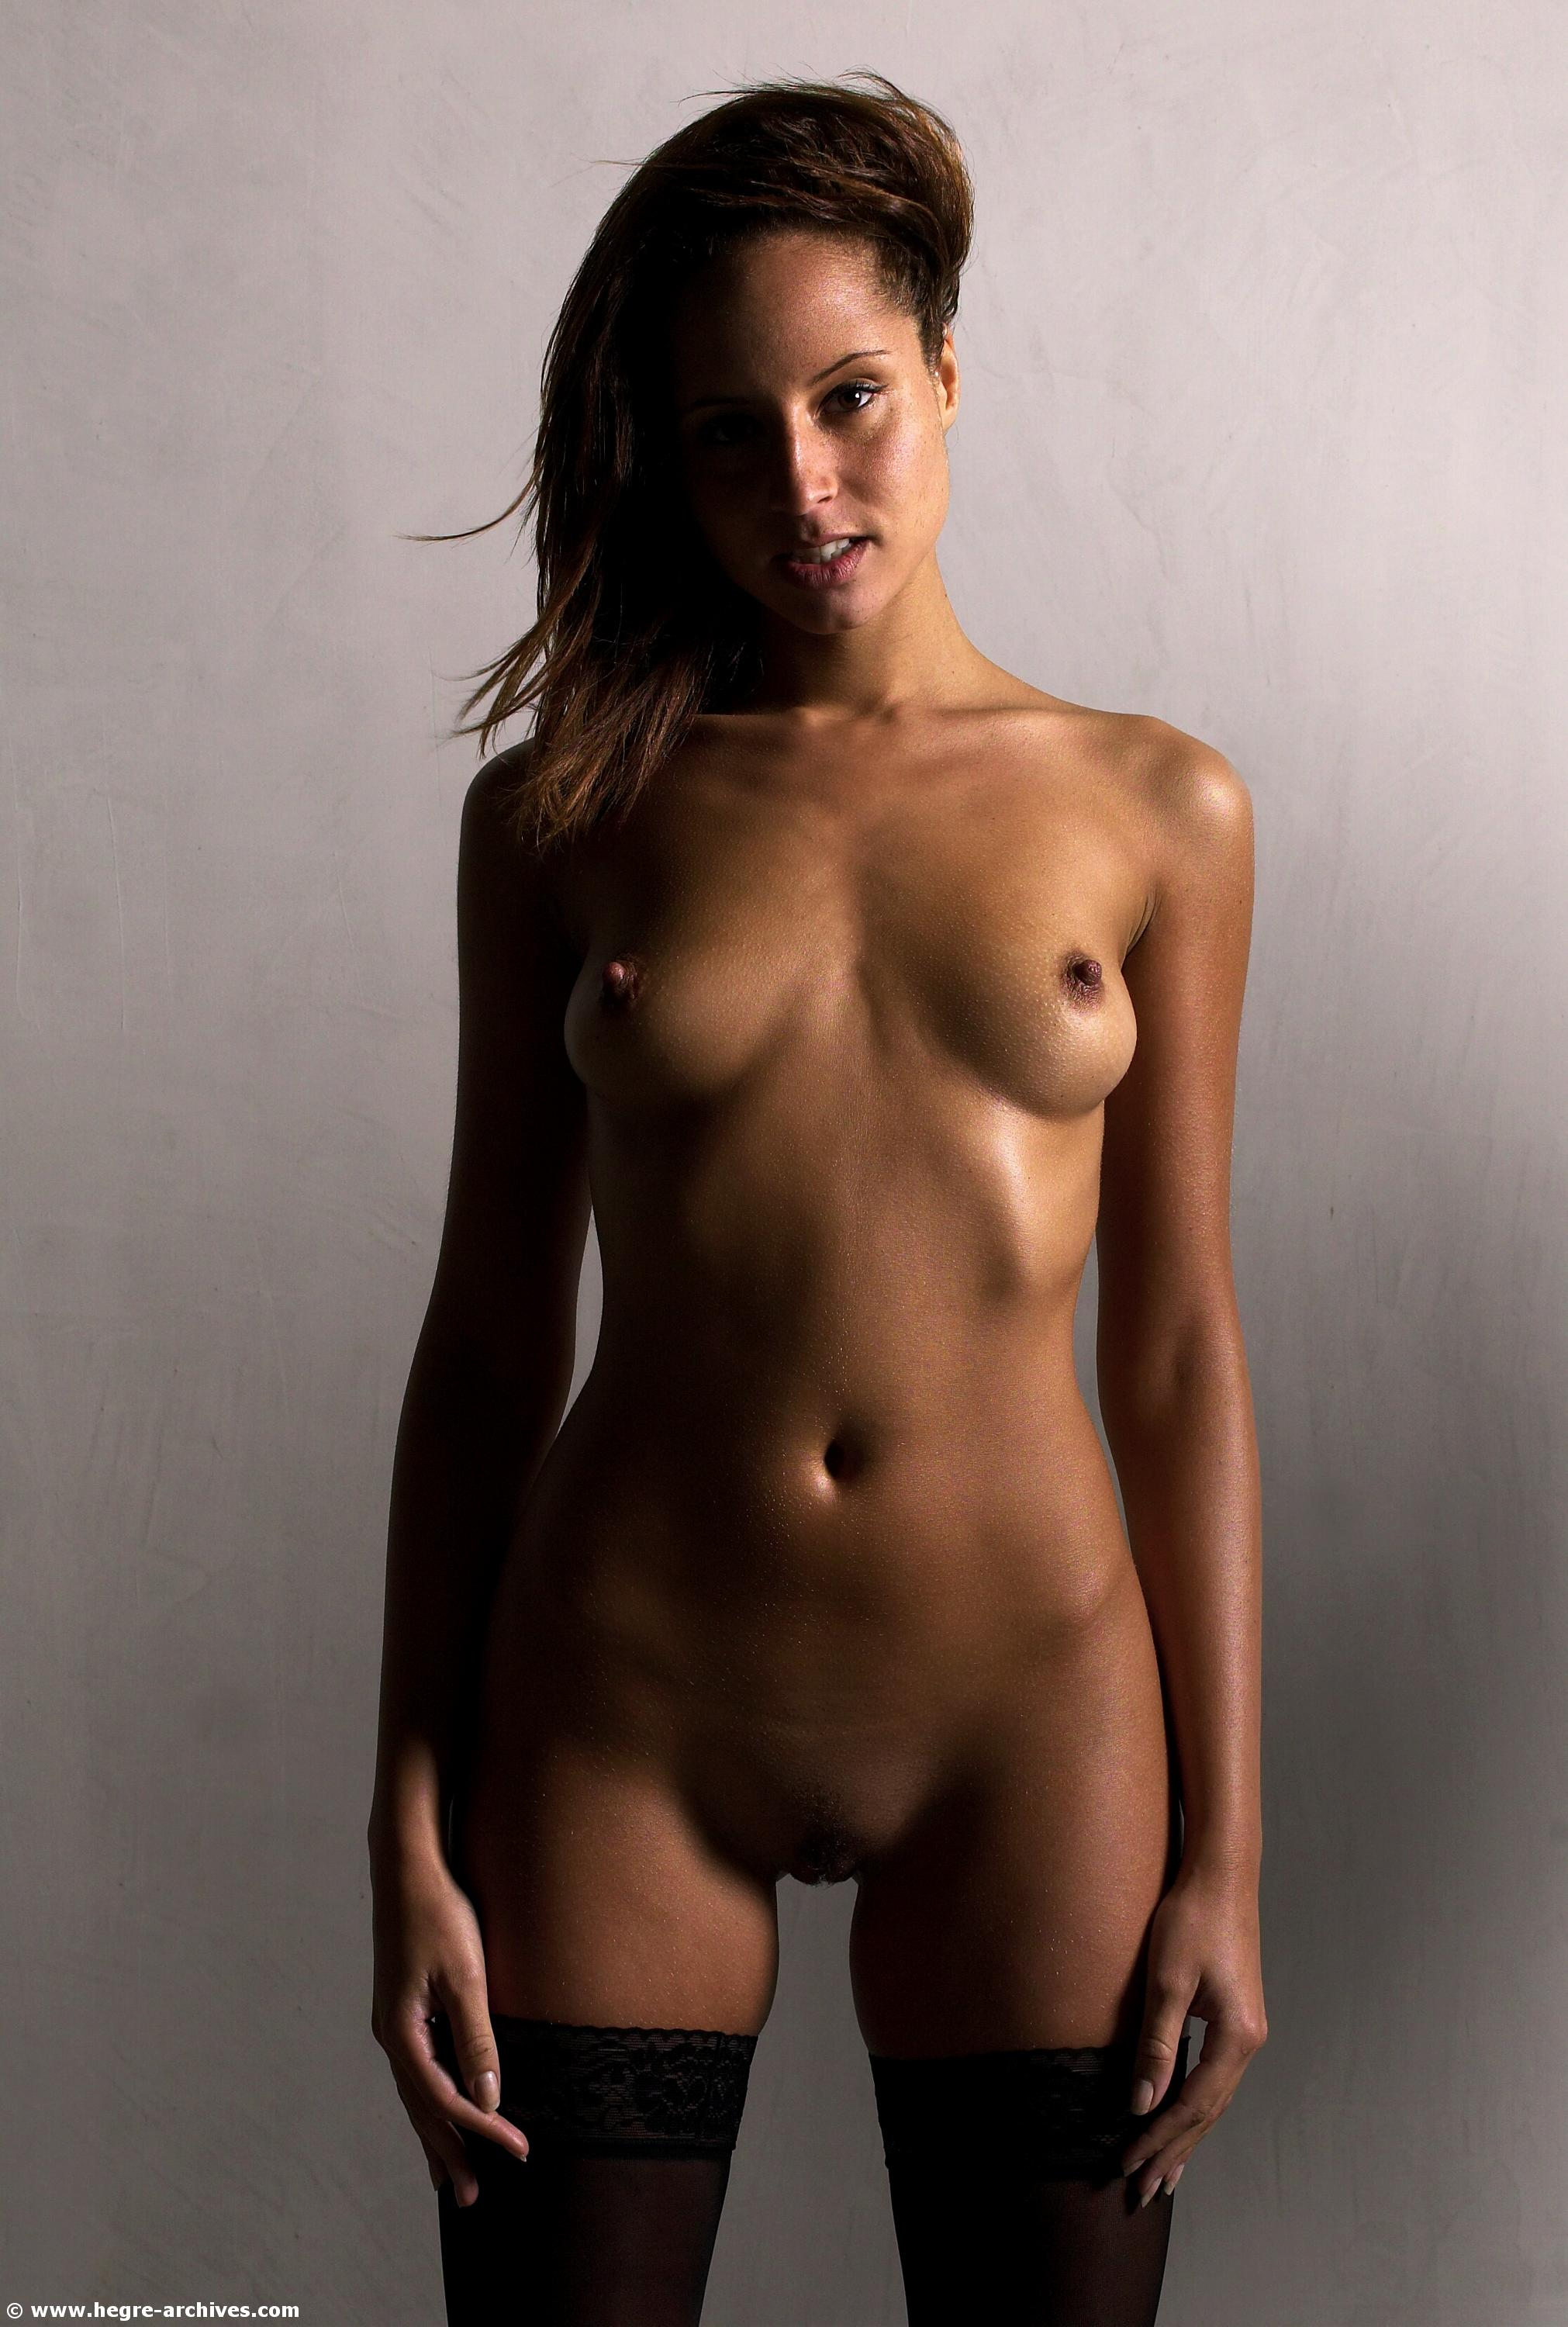 naked-girls-in-stockings-mix-vol6-60